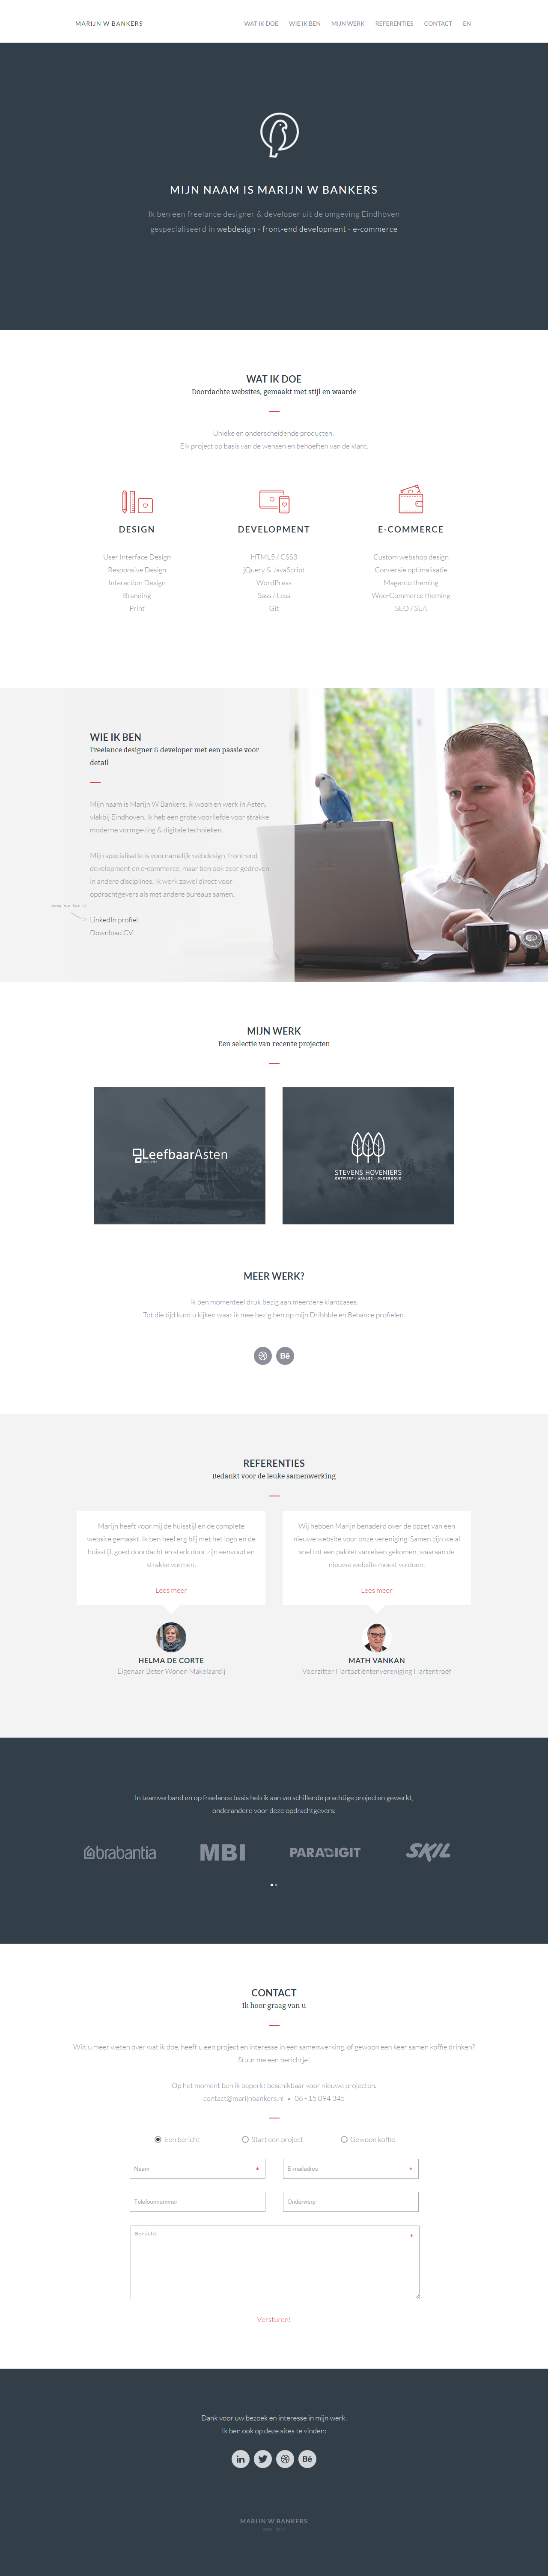 Clean responsive one page portfolio integrated into WordPress for Dutch front-end dev, Marijn W Bankers. I just love the load transitions on the icons in the intro.